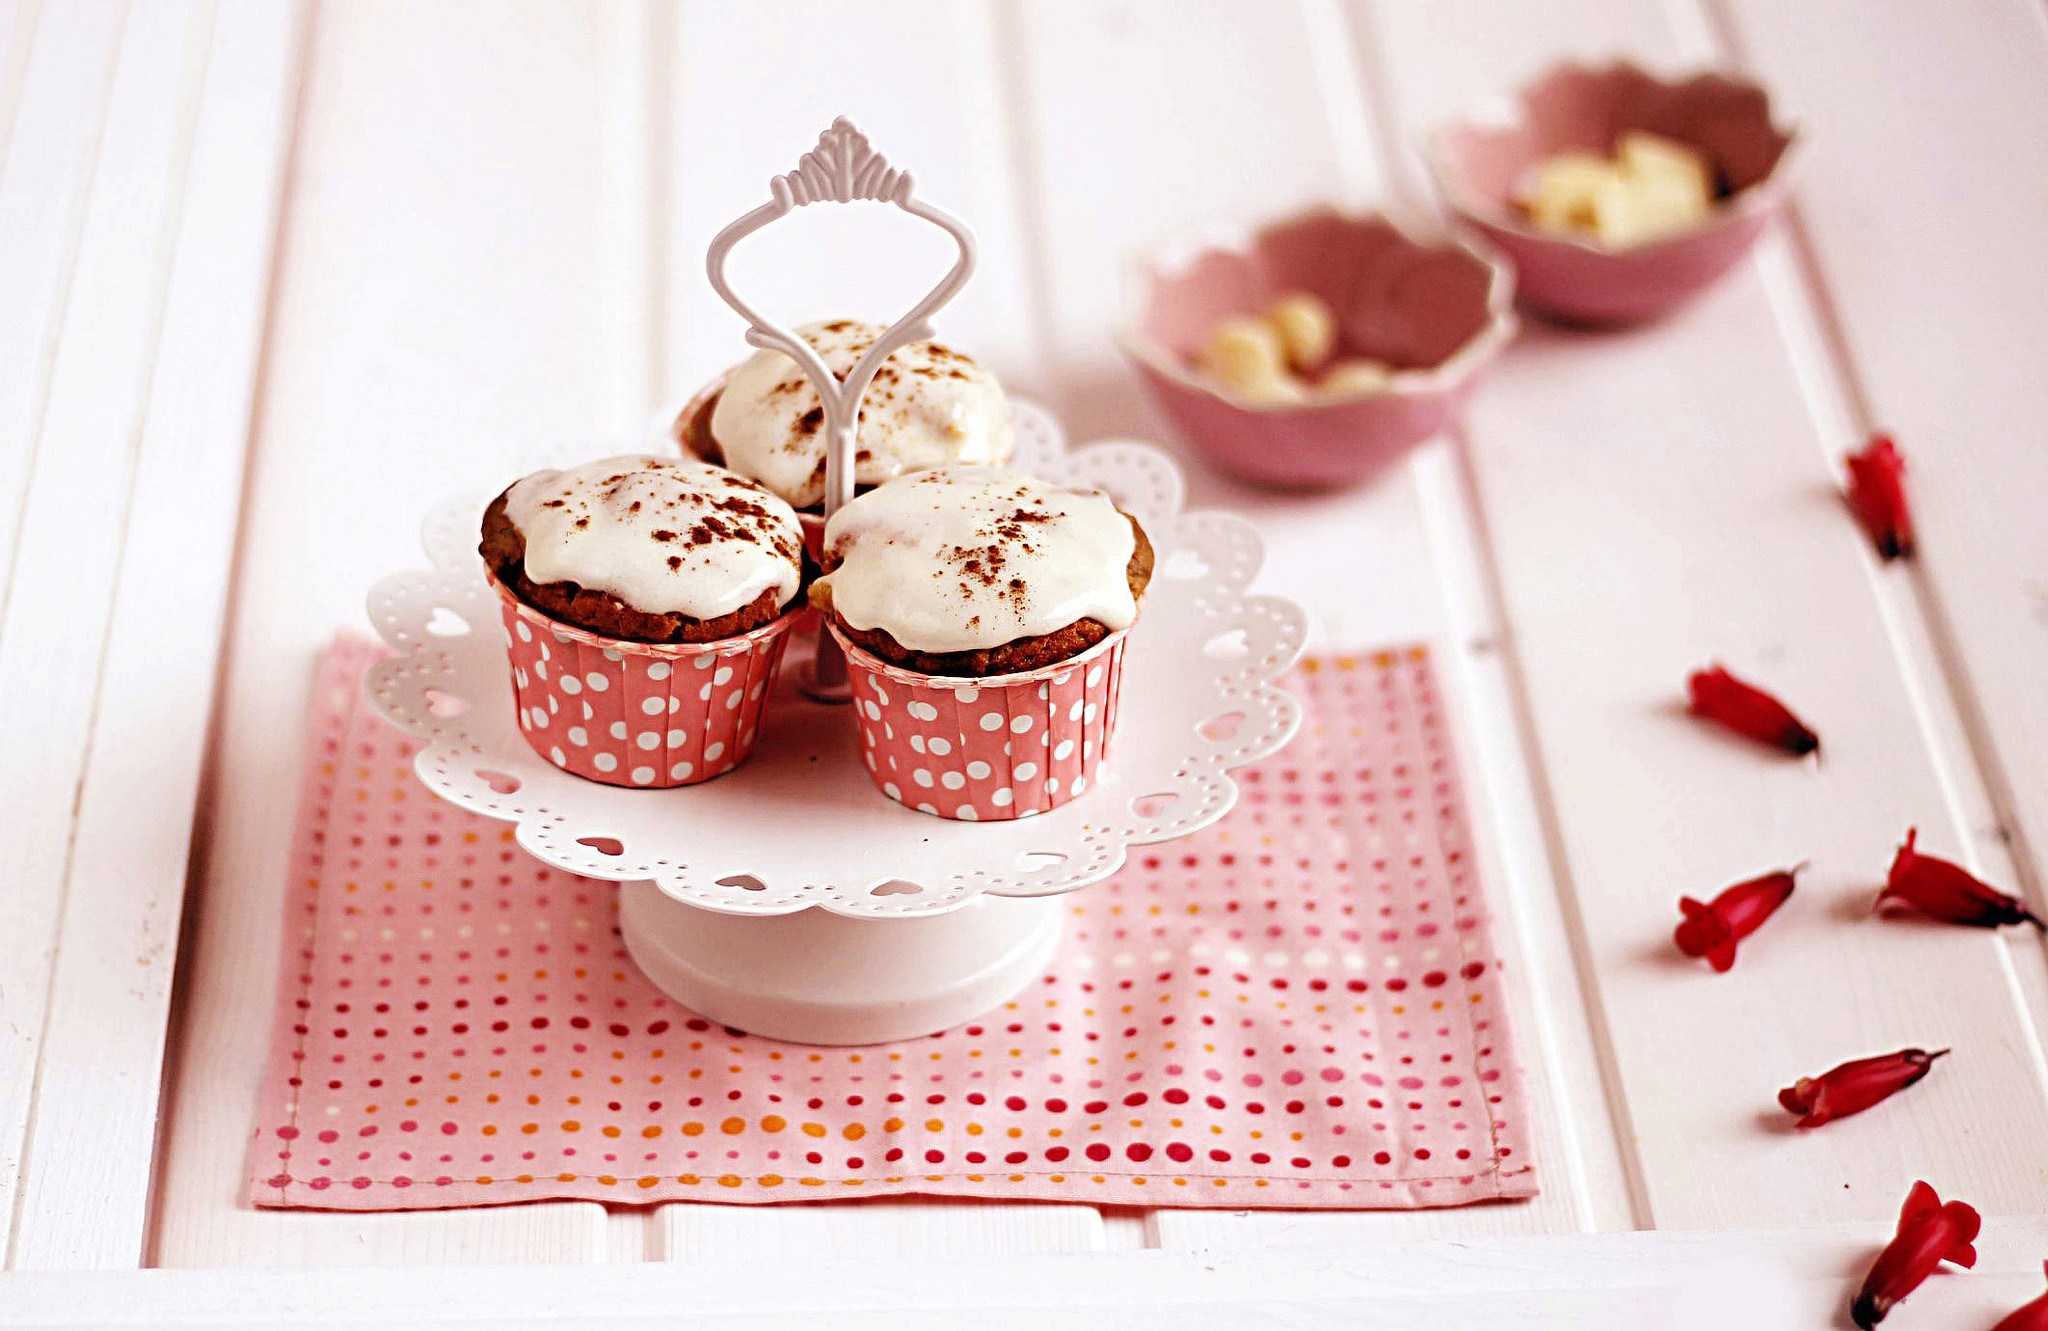 Res: 2048x1331, Cupcake Wallpapers 09